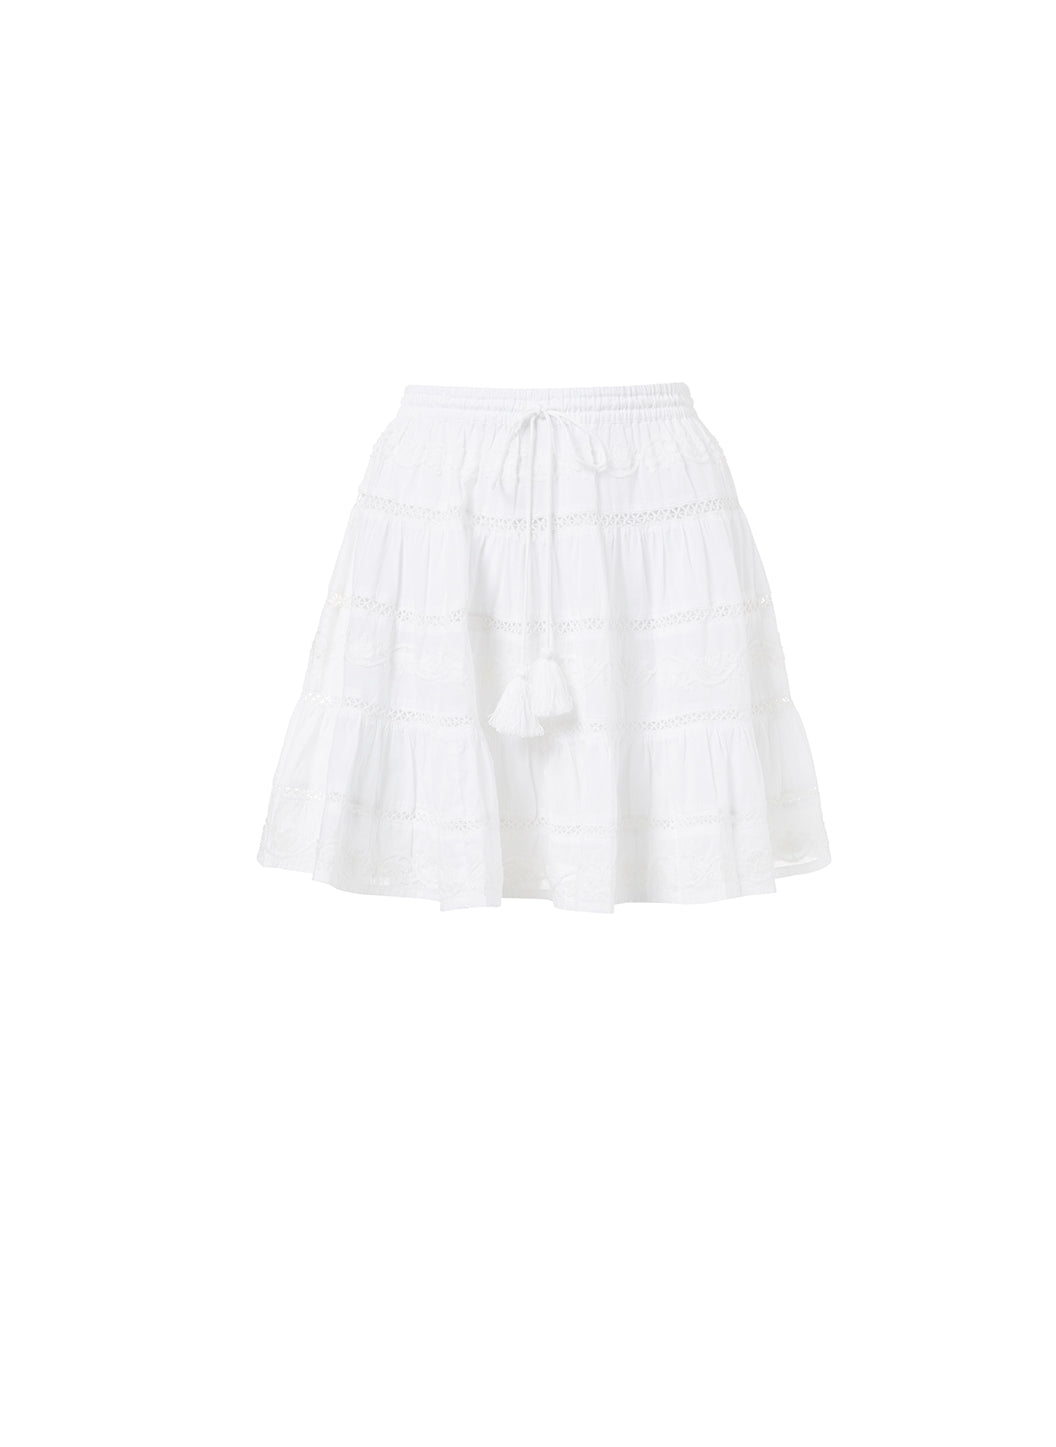 Anita White Tassle Skirt